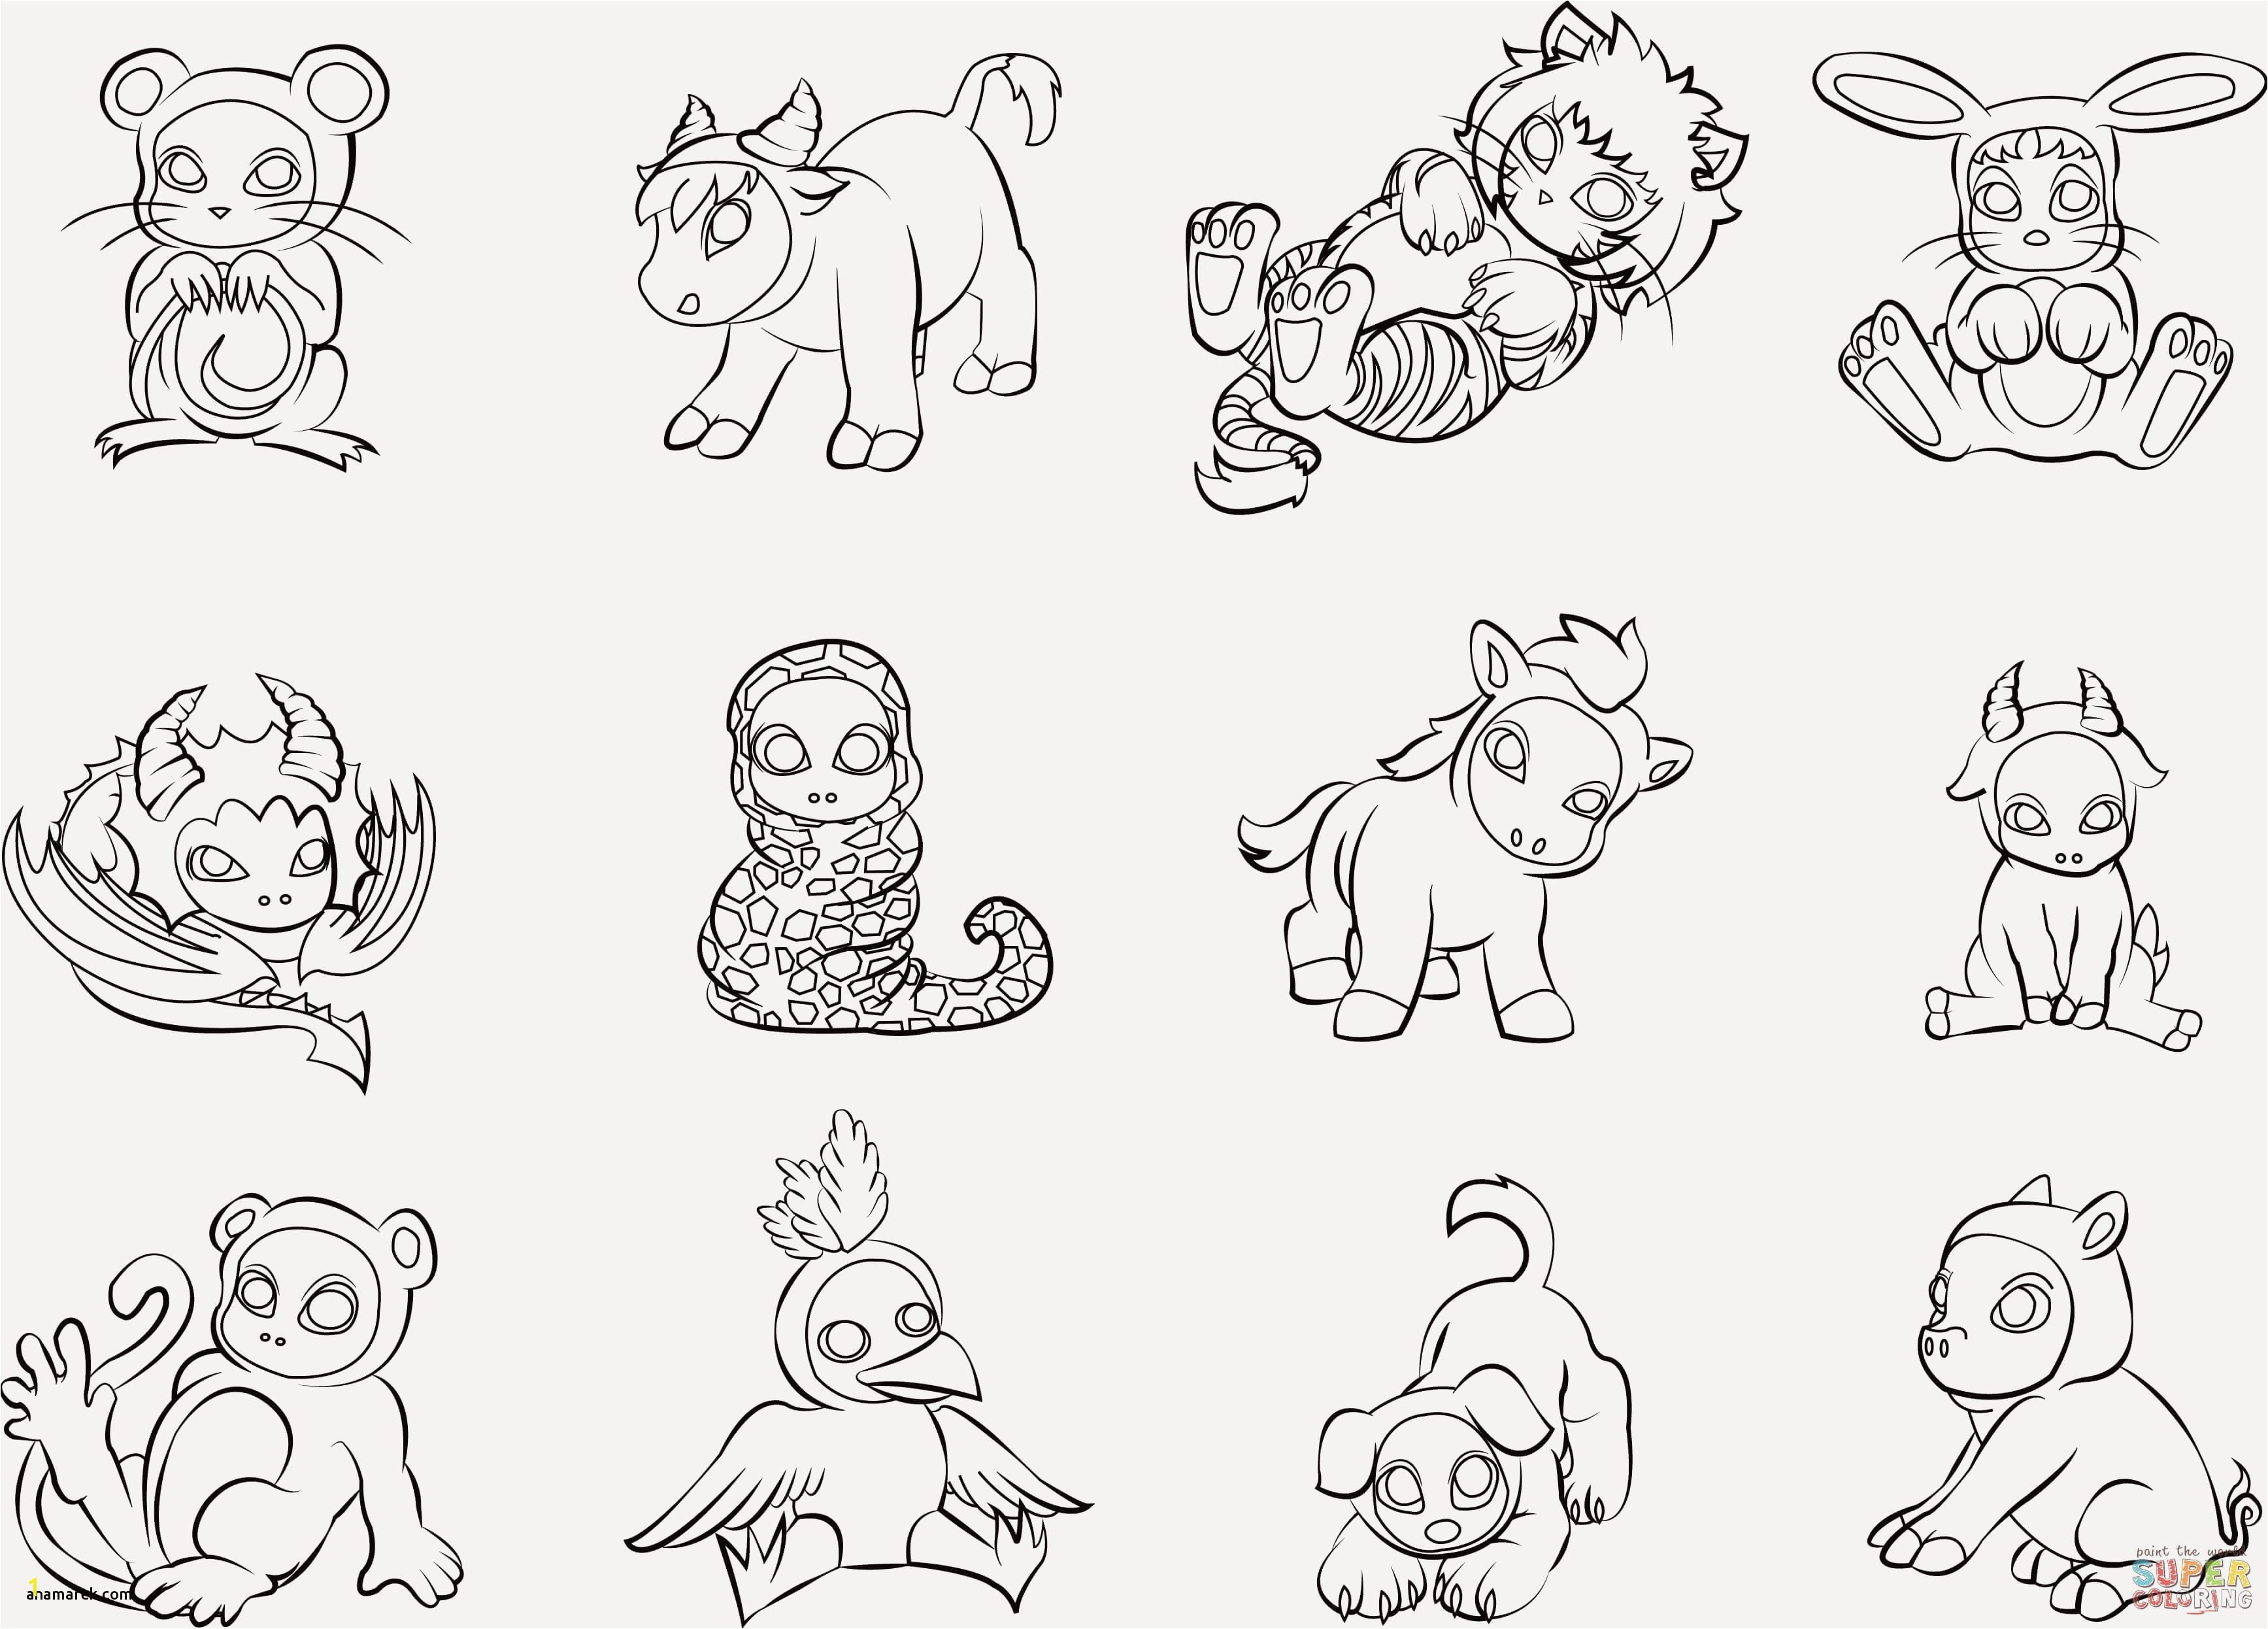 Anime Animals Coloring Page Beautiful Childrens Coloring Pages Animals Unique Fresh Od Dog Coloring Pages